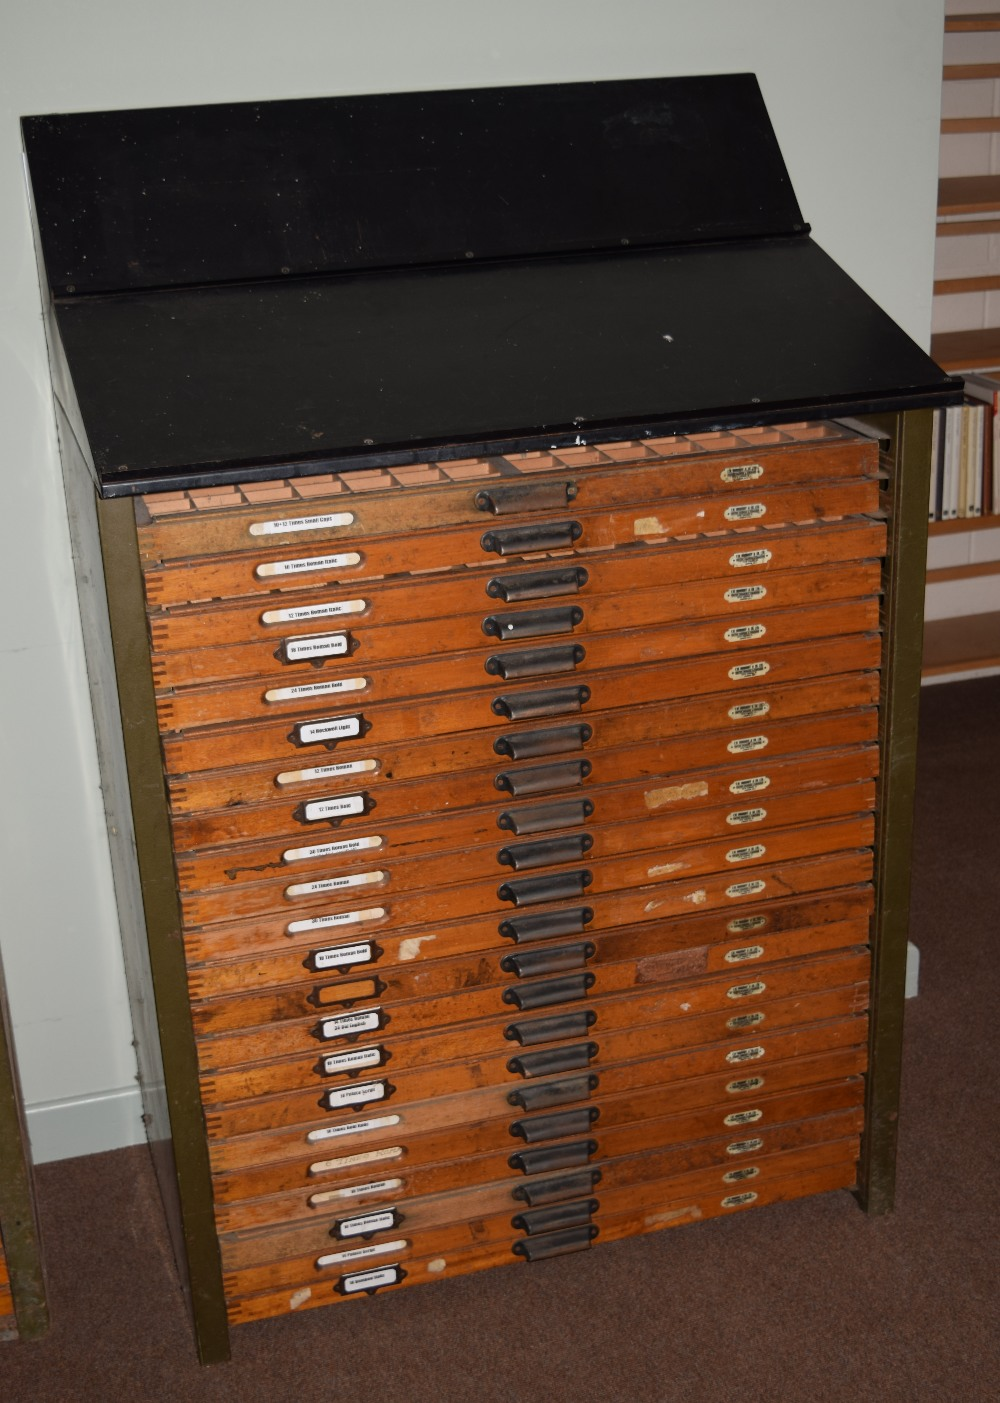 Lot 56 - *Type Cabinet. A large 22 drawer type cabinet by F.W. Woodroff & Co. Ltd., with compositor's slope